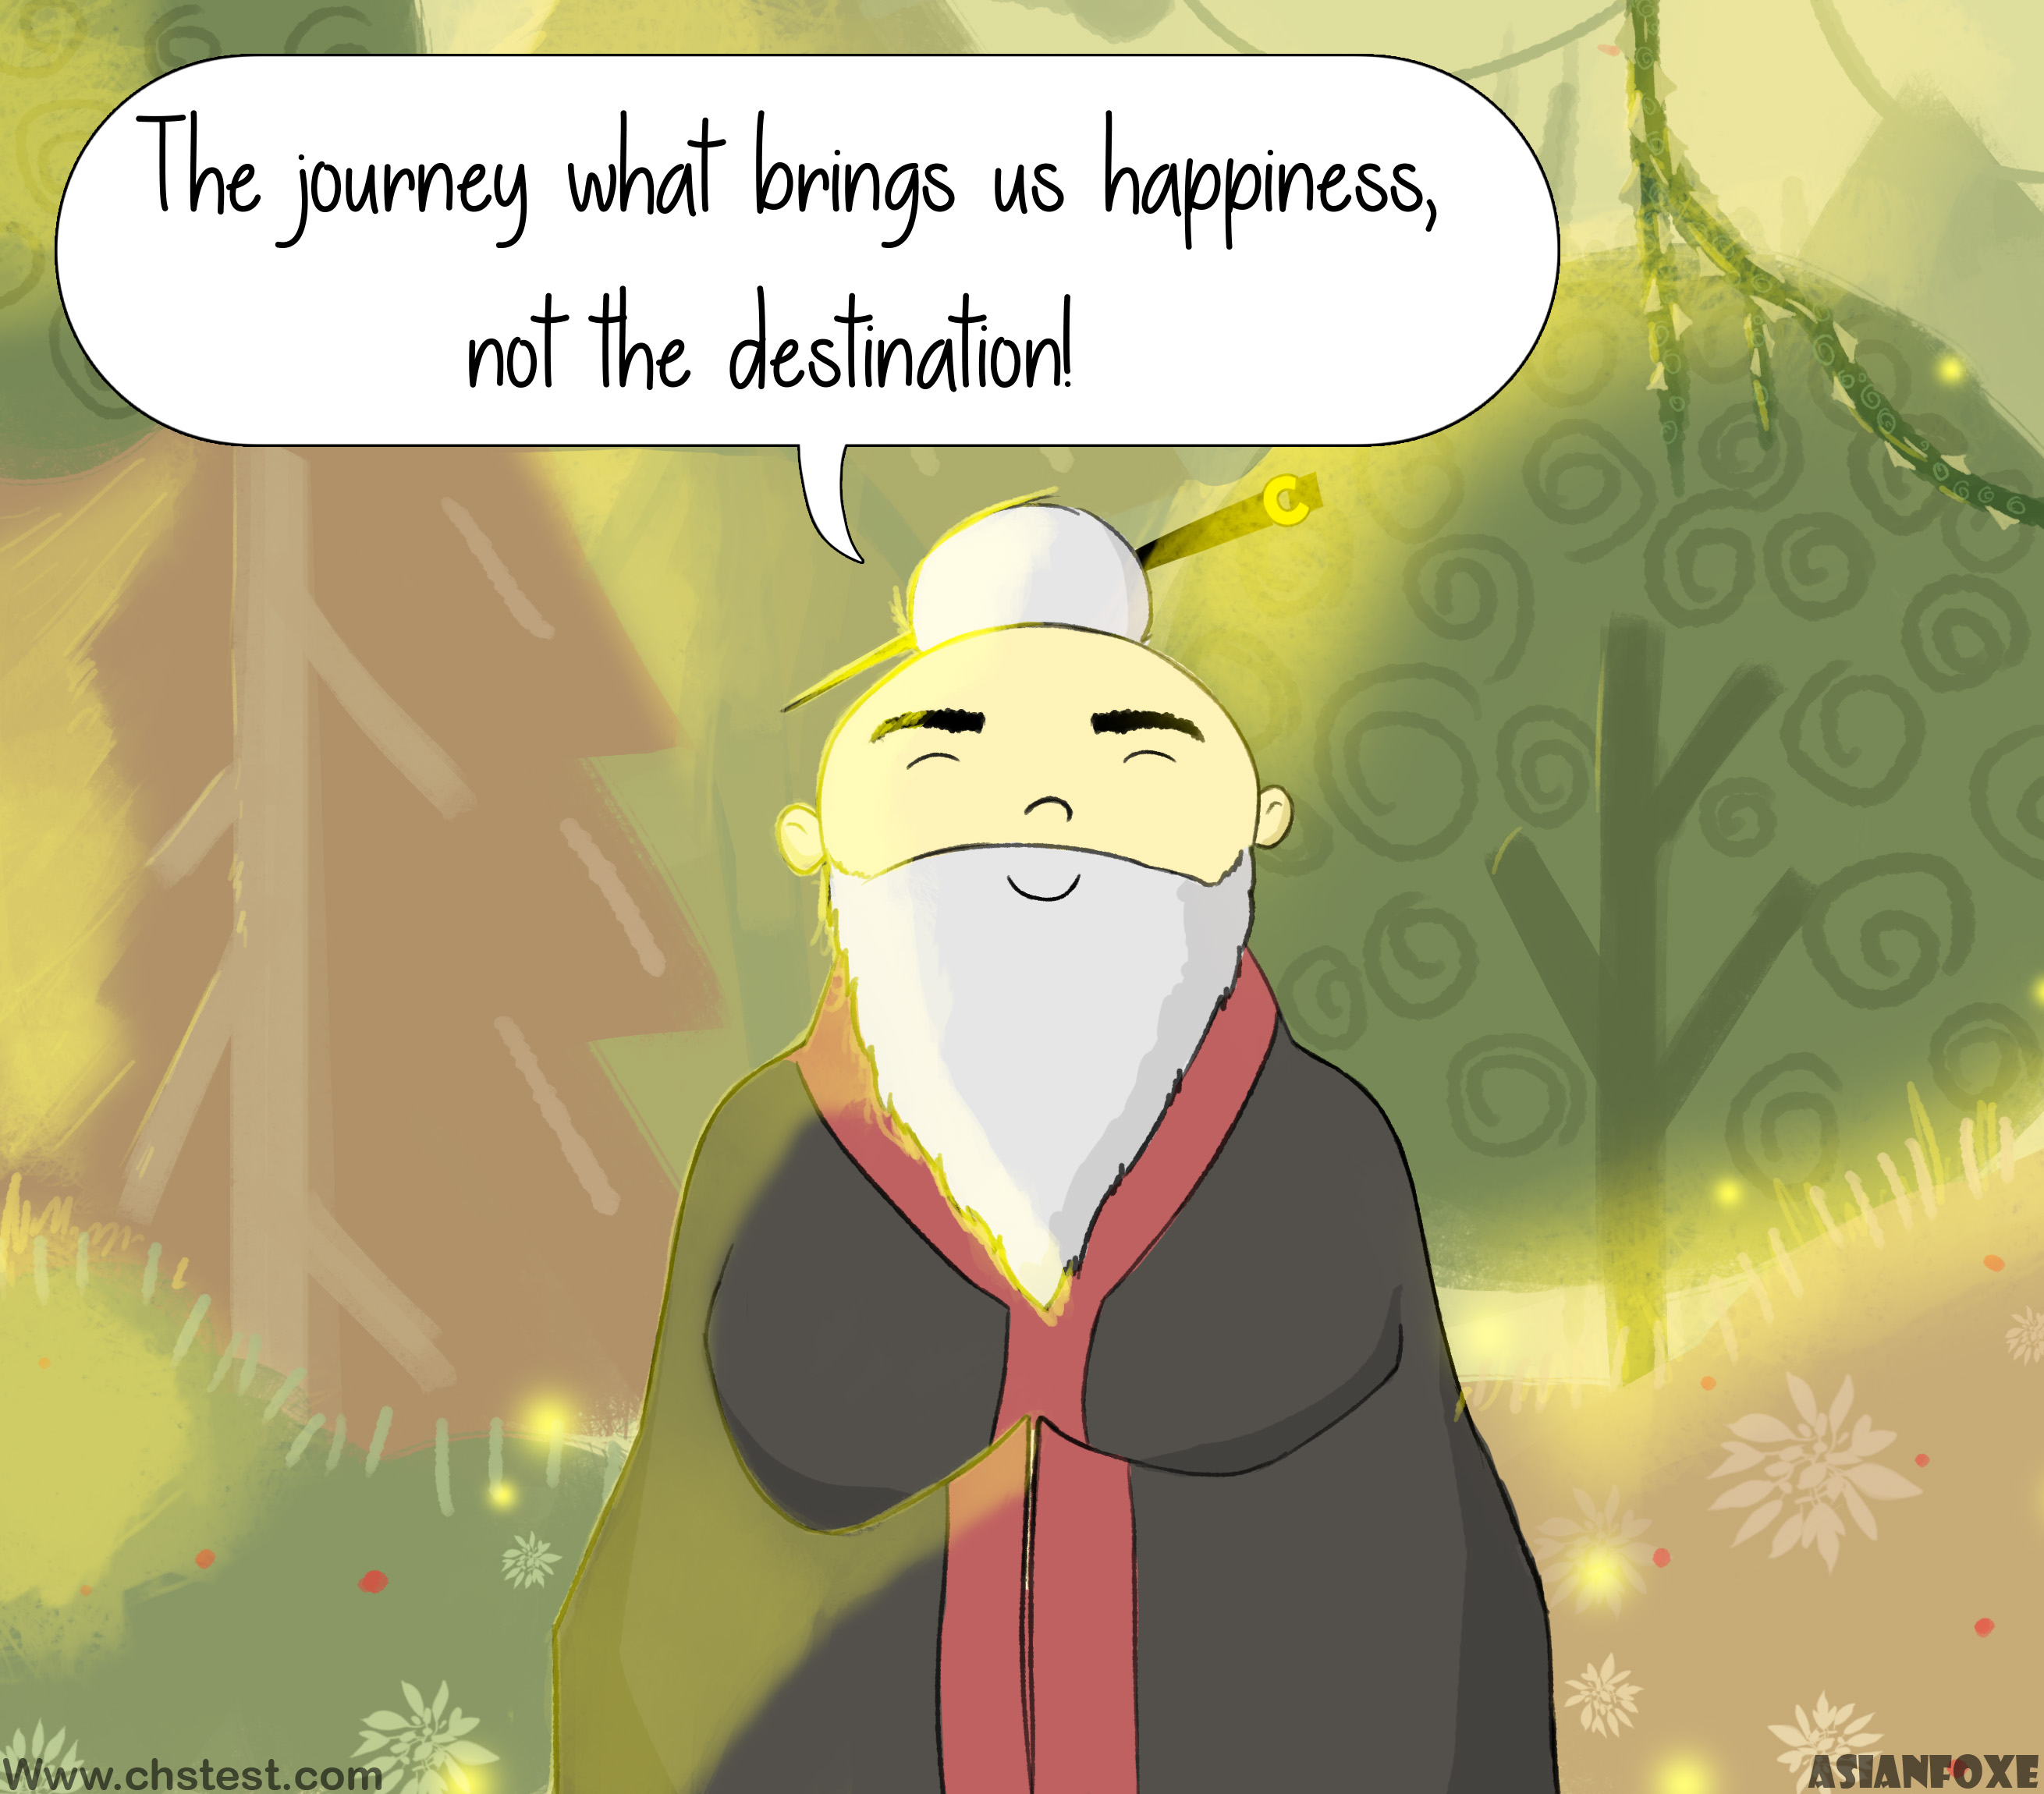 Consciousness: The journey is what brings us happiness, not the destination!